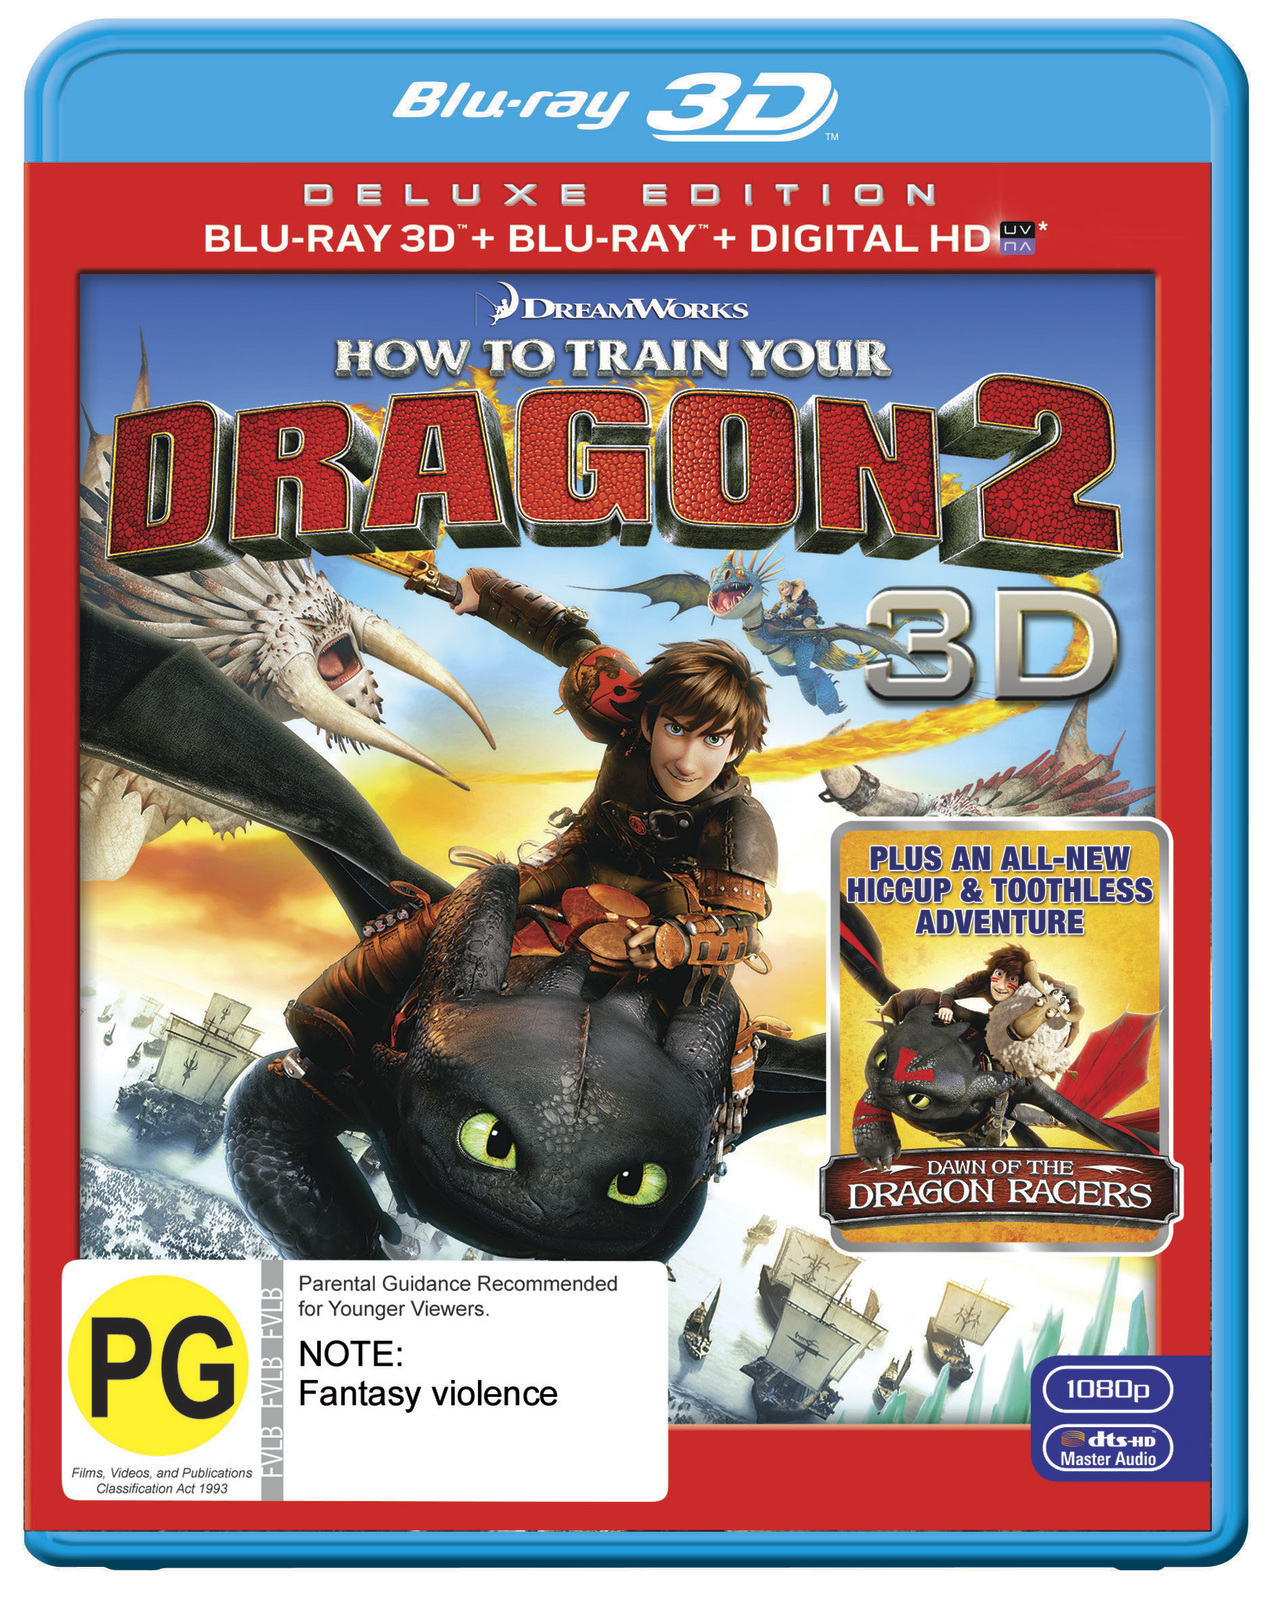 How To Train Your Dragon 2 3D on Blu-ray, 3D Blu-ray, UV image